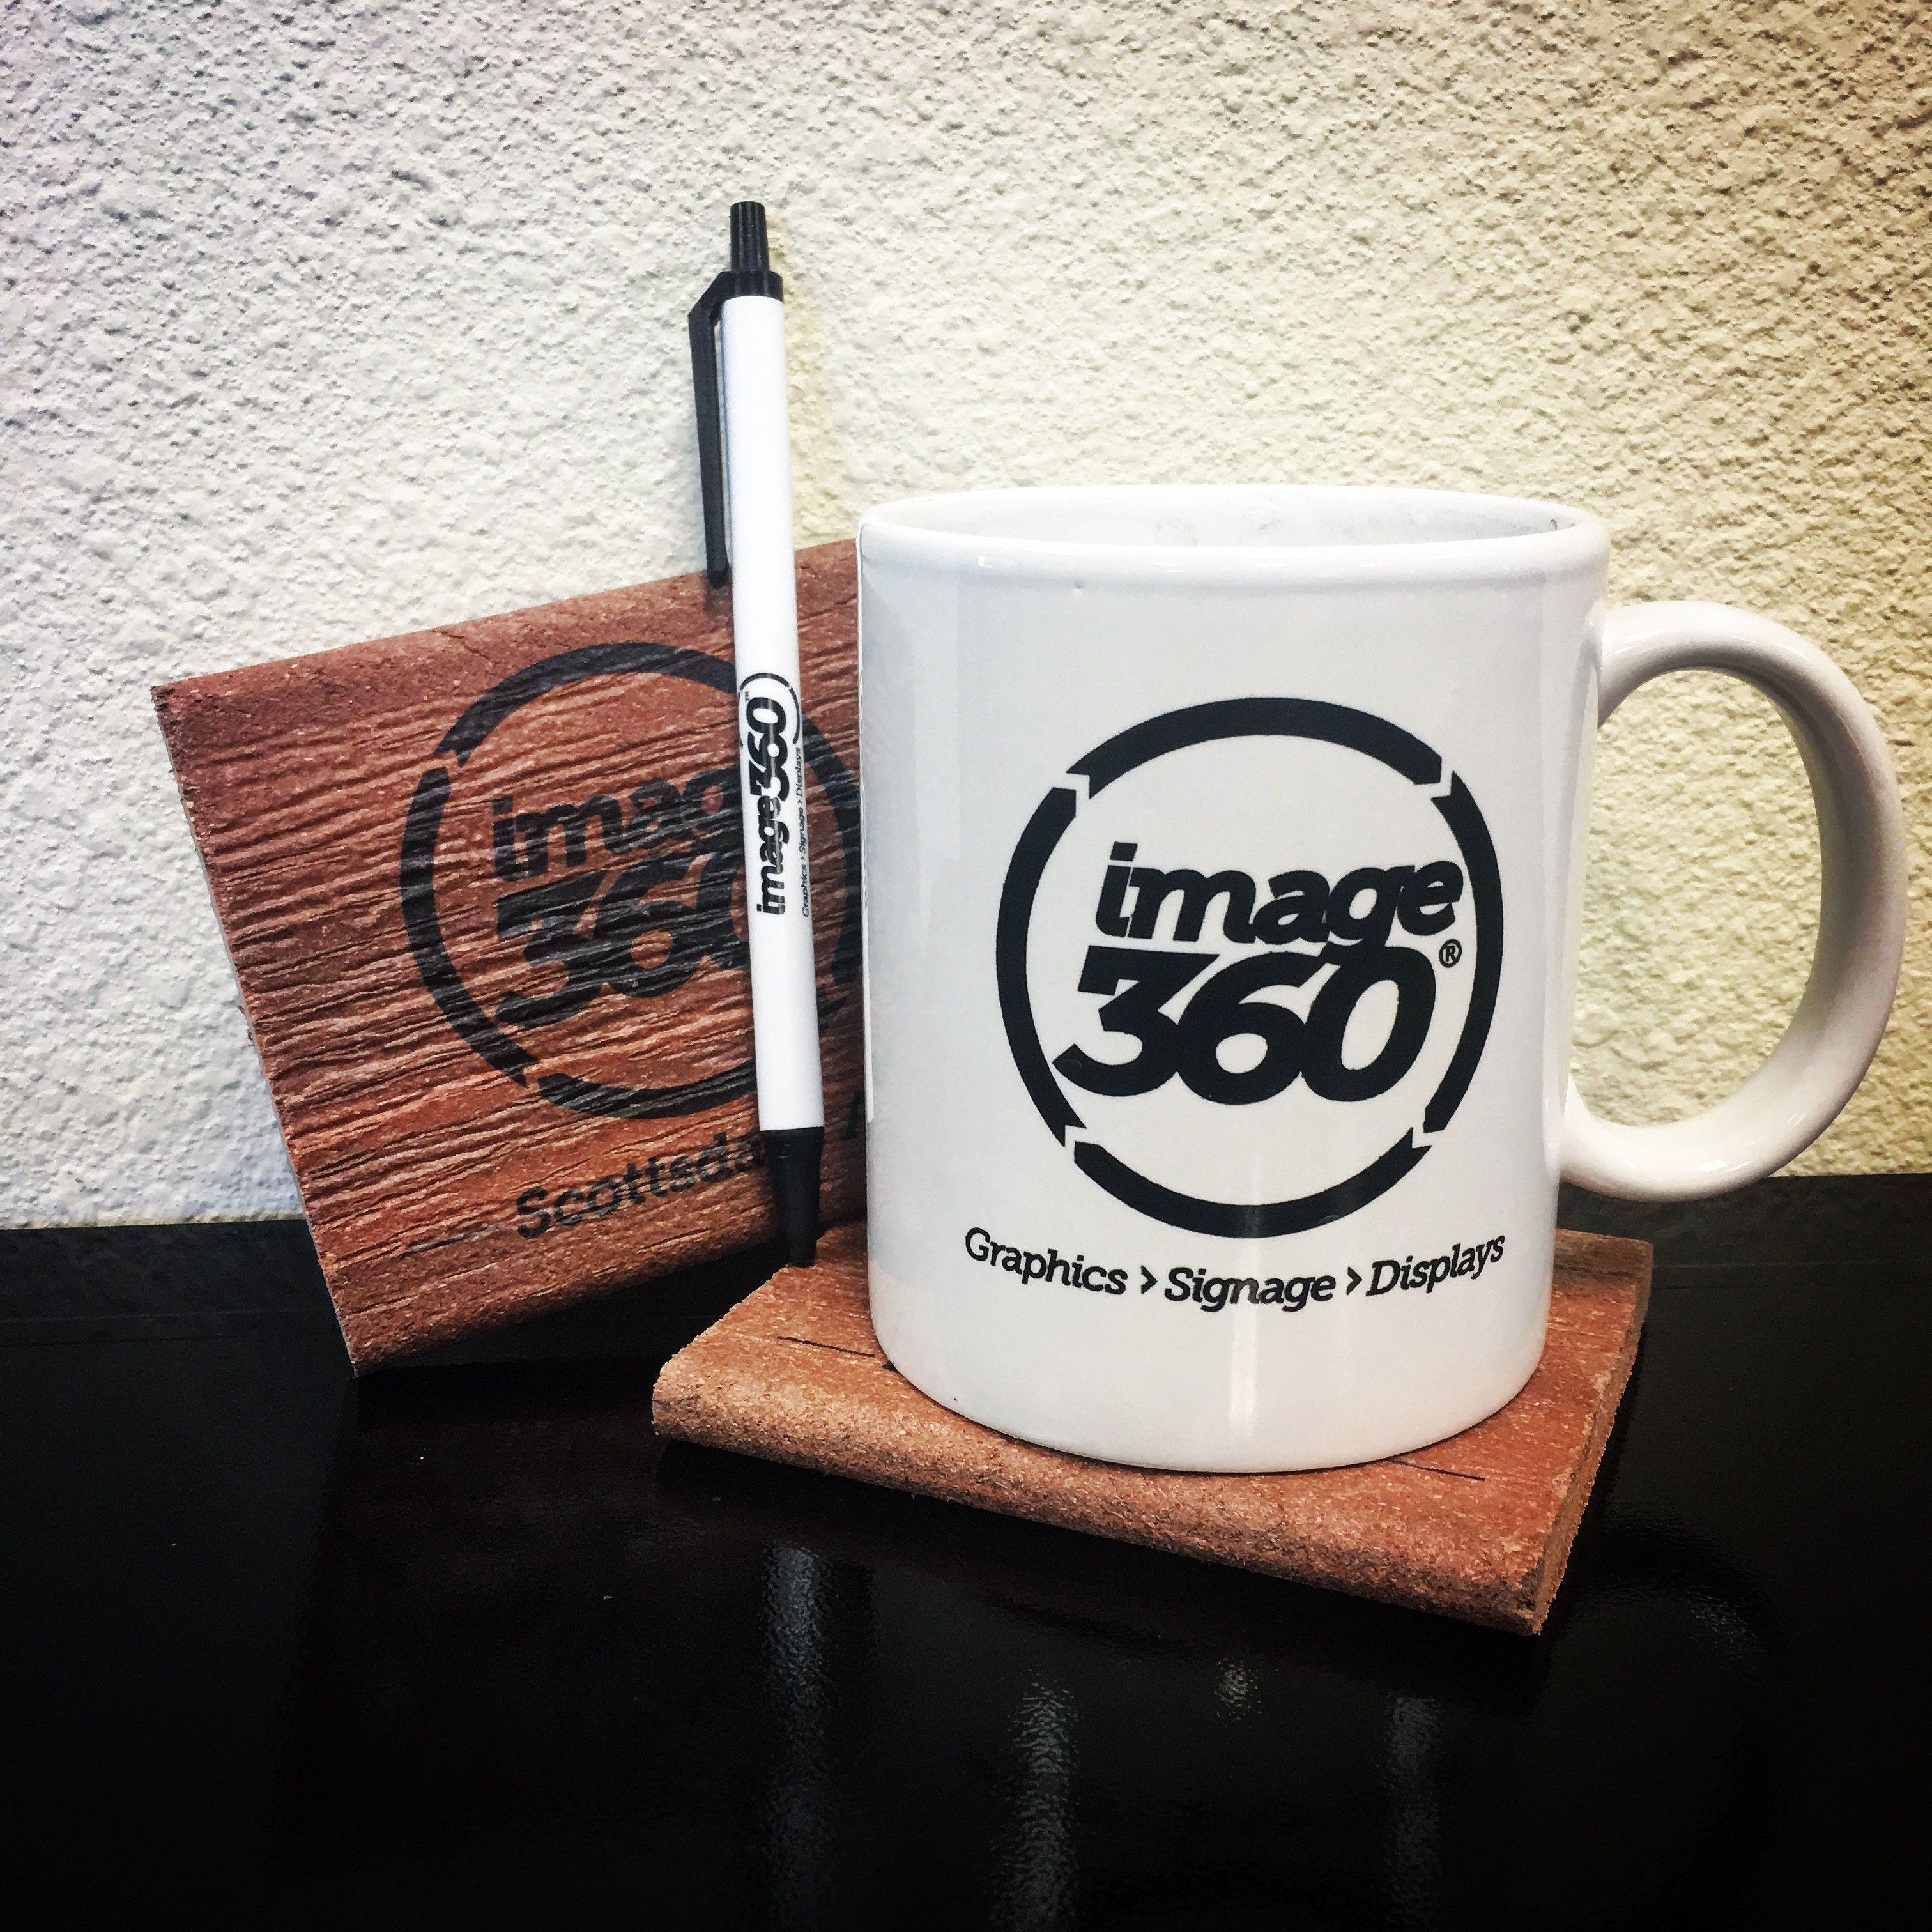 Promotional Products for Image360 in Scottsdale, AZ